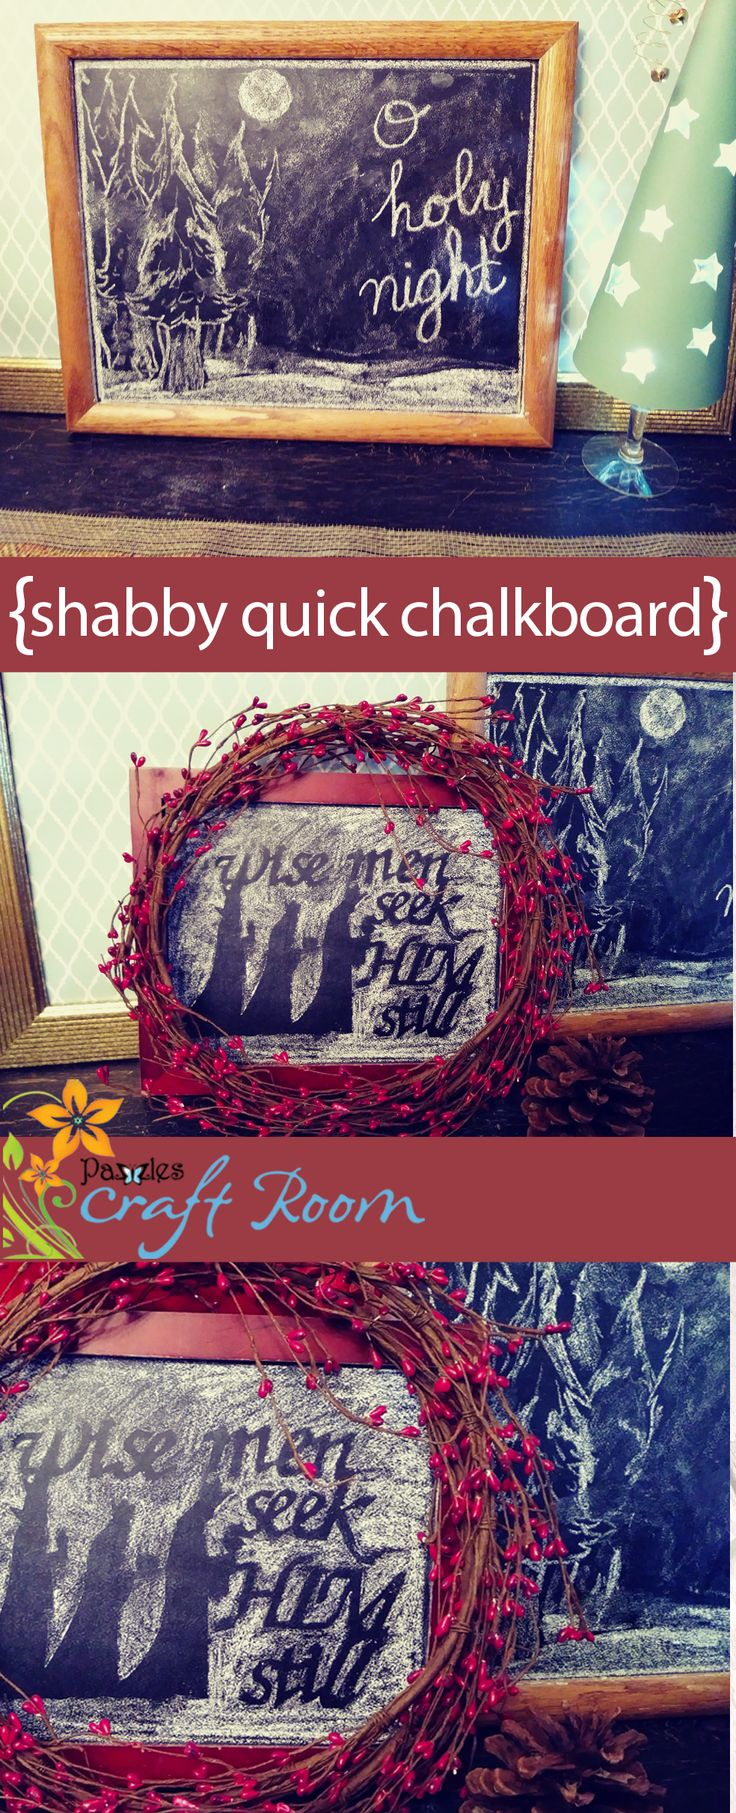 Create your own chalkboard using chalkboard vinyl and a frame, then create a beautiful art using chalk and vinyl as a stencil!